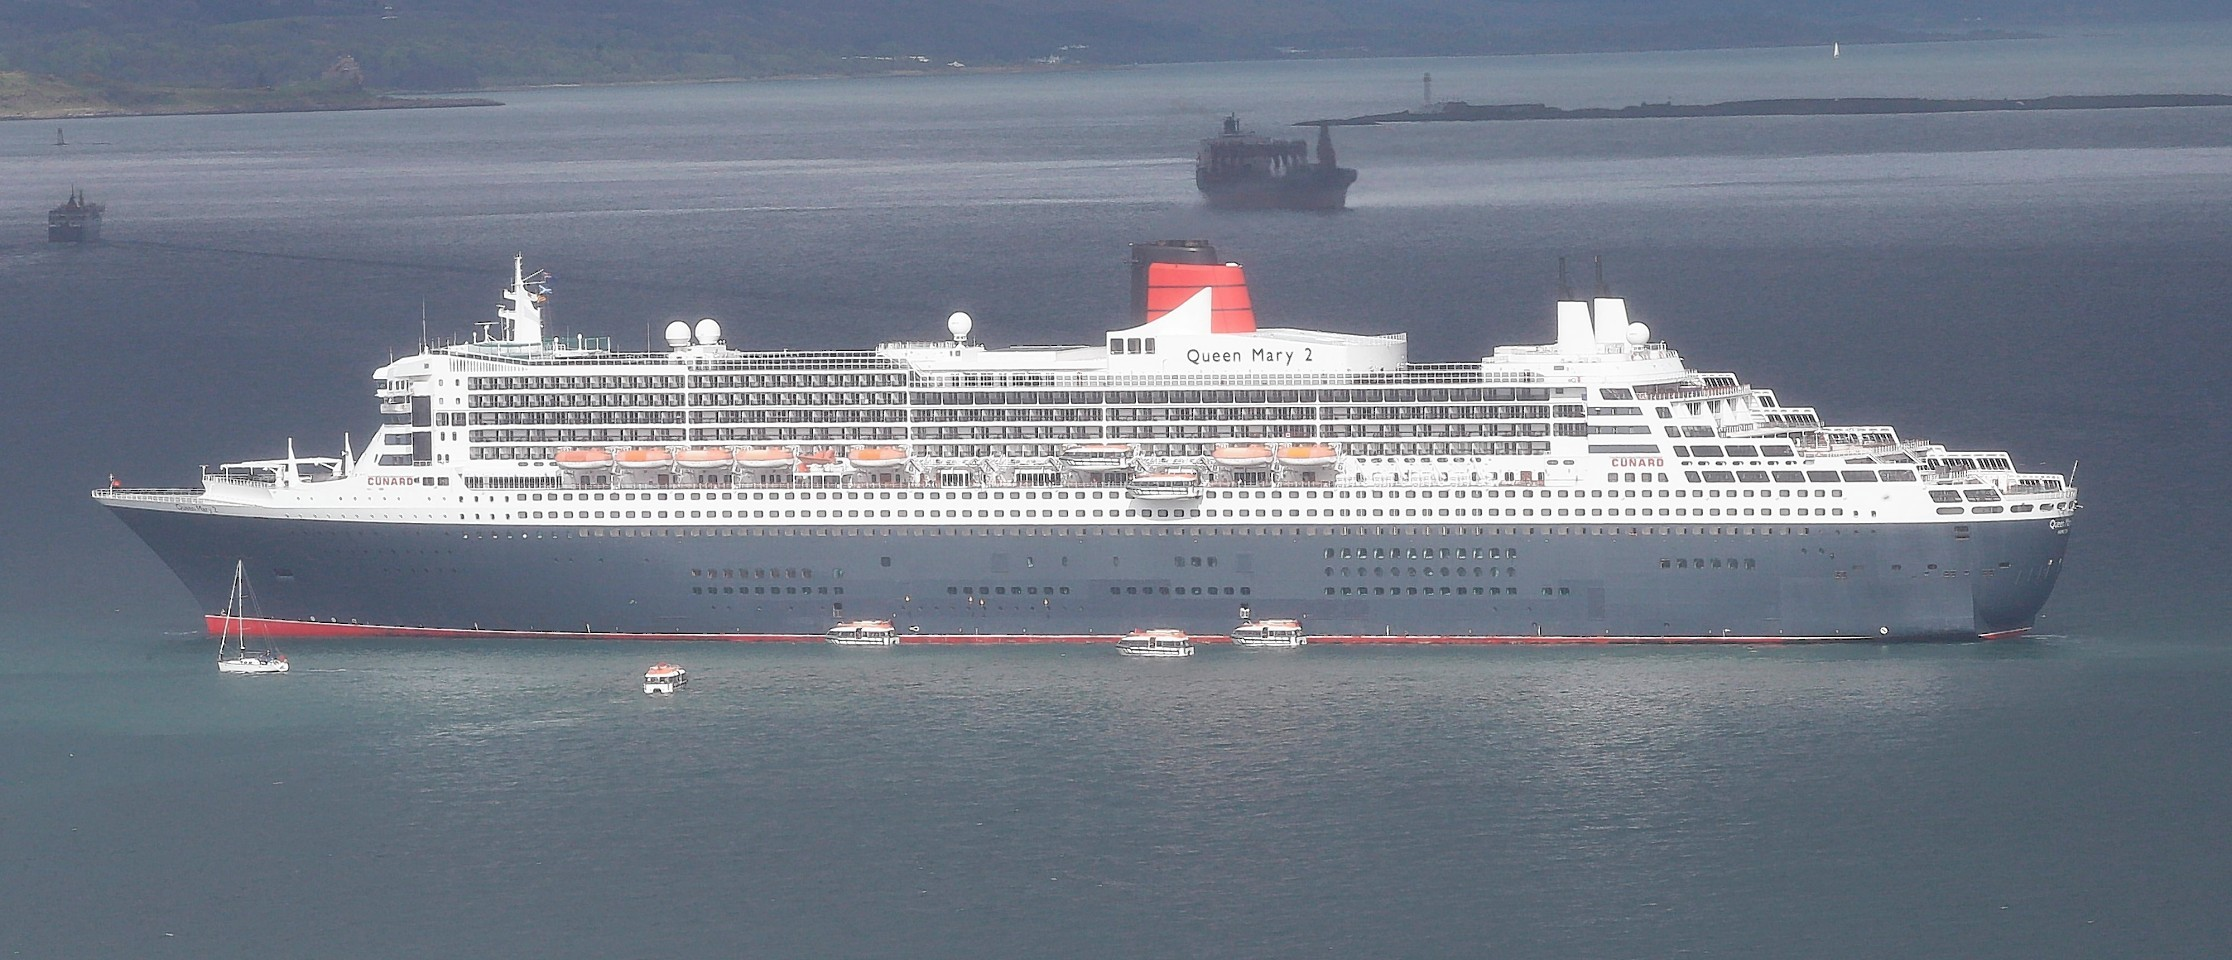 Queen Mary 2 visits Oban